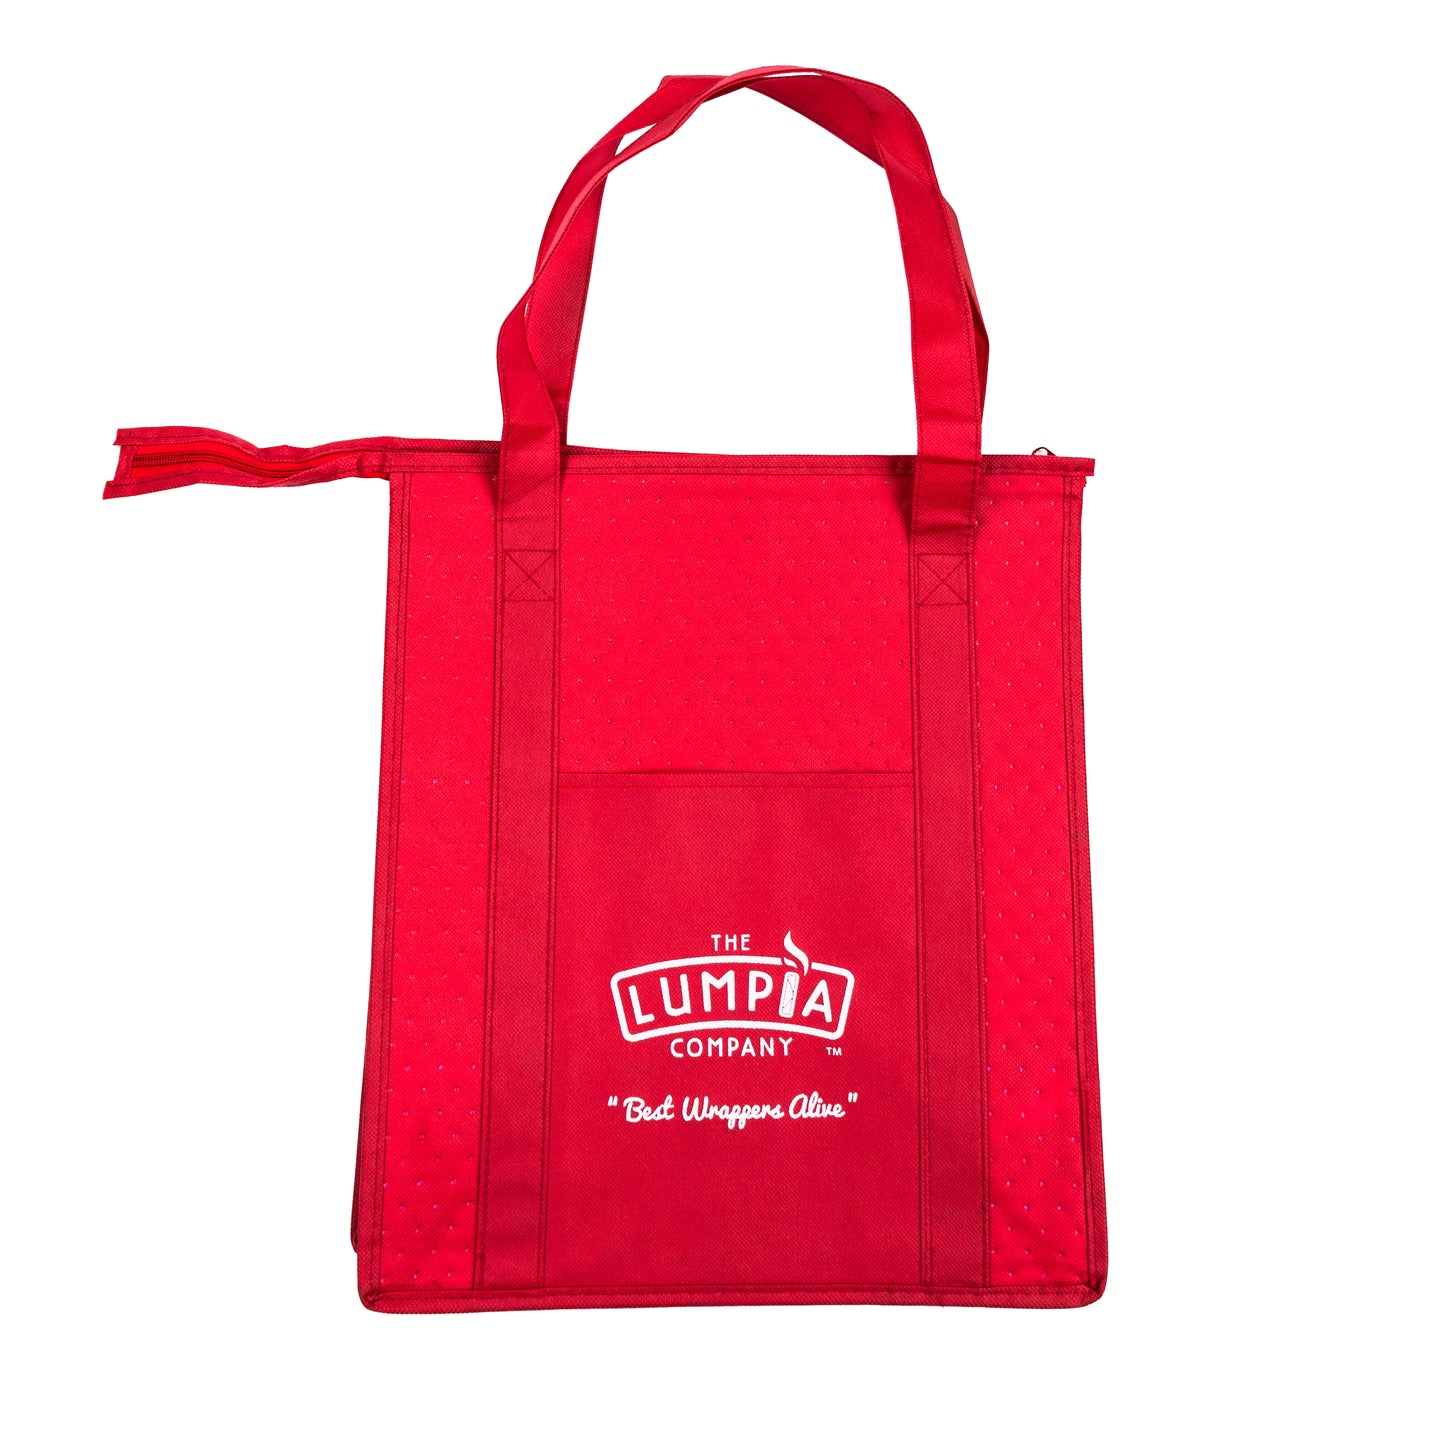 The Lumpia Company Red Insulated Bag